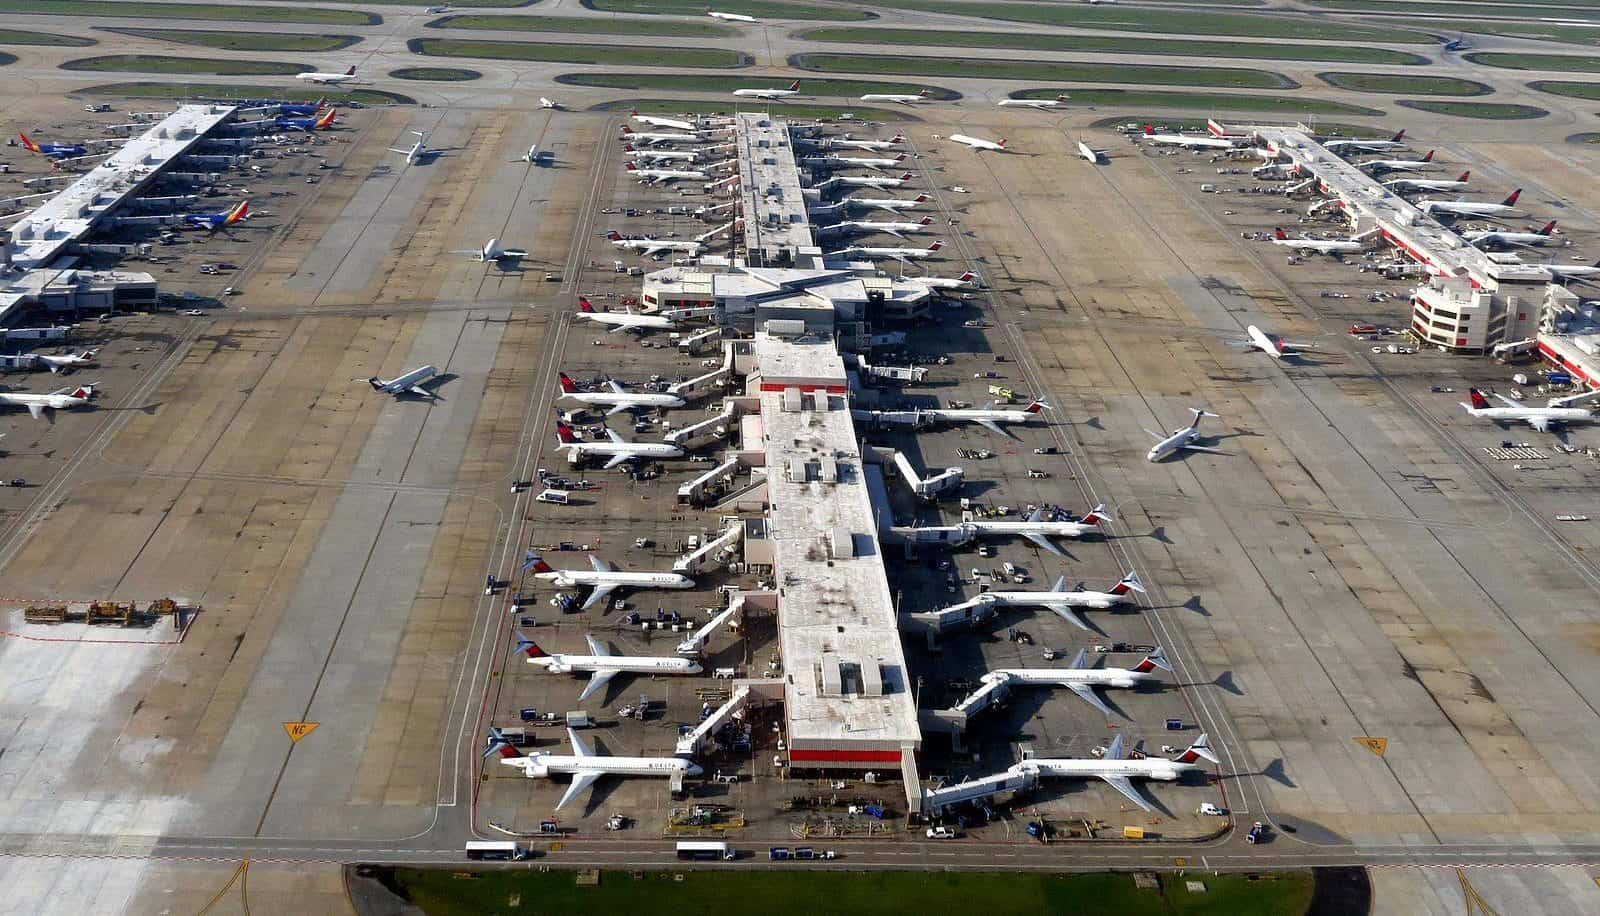 10 Busiest Airports In The World In 2019